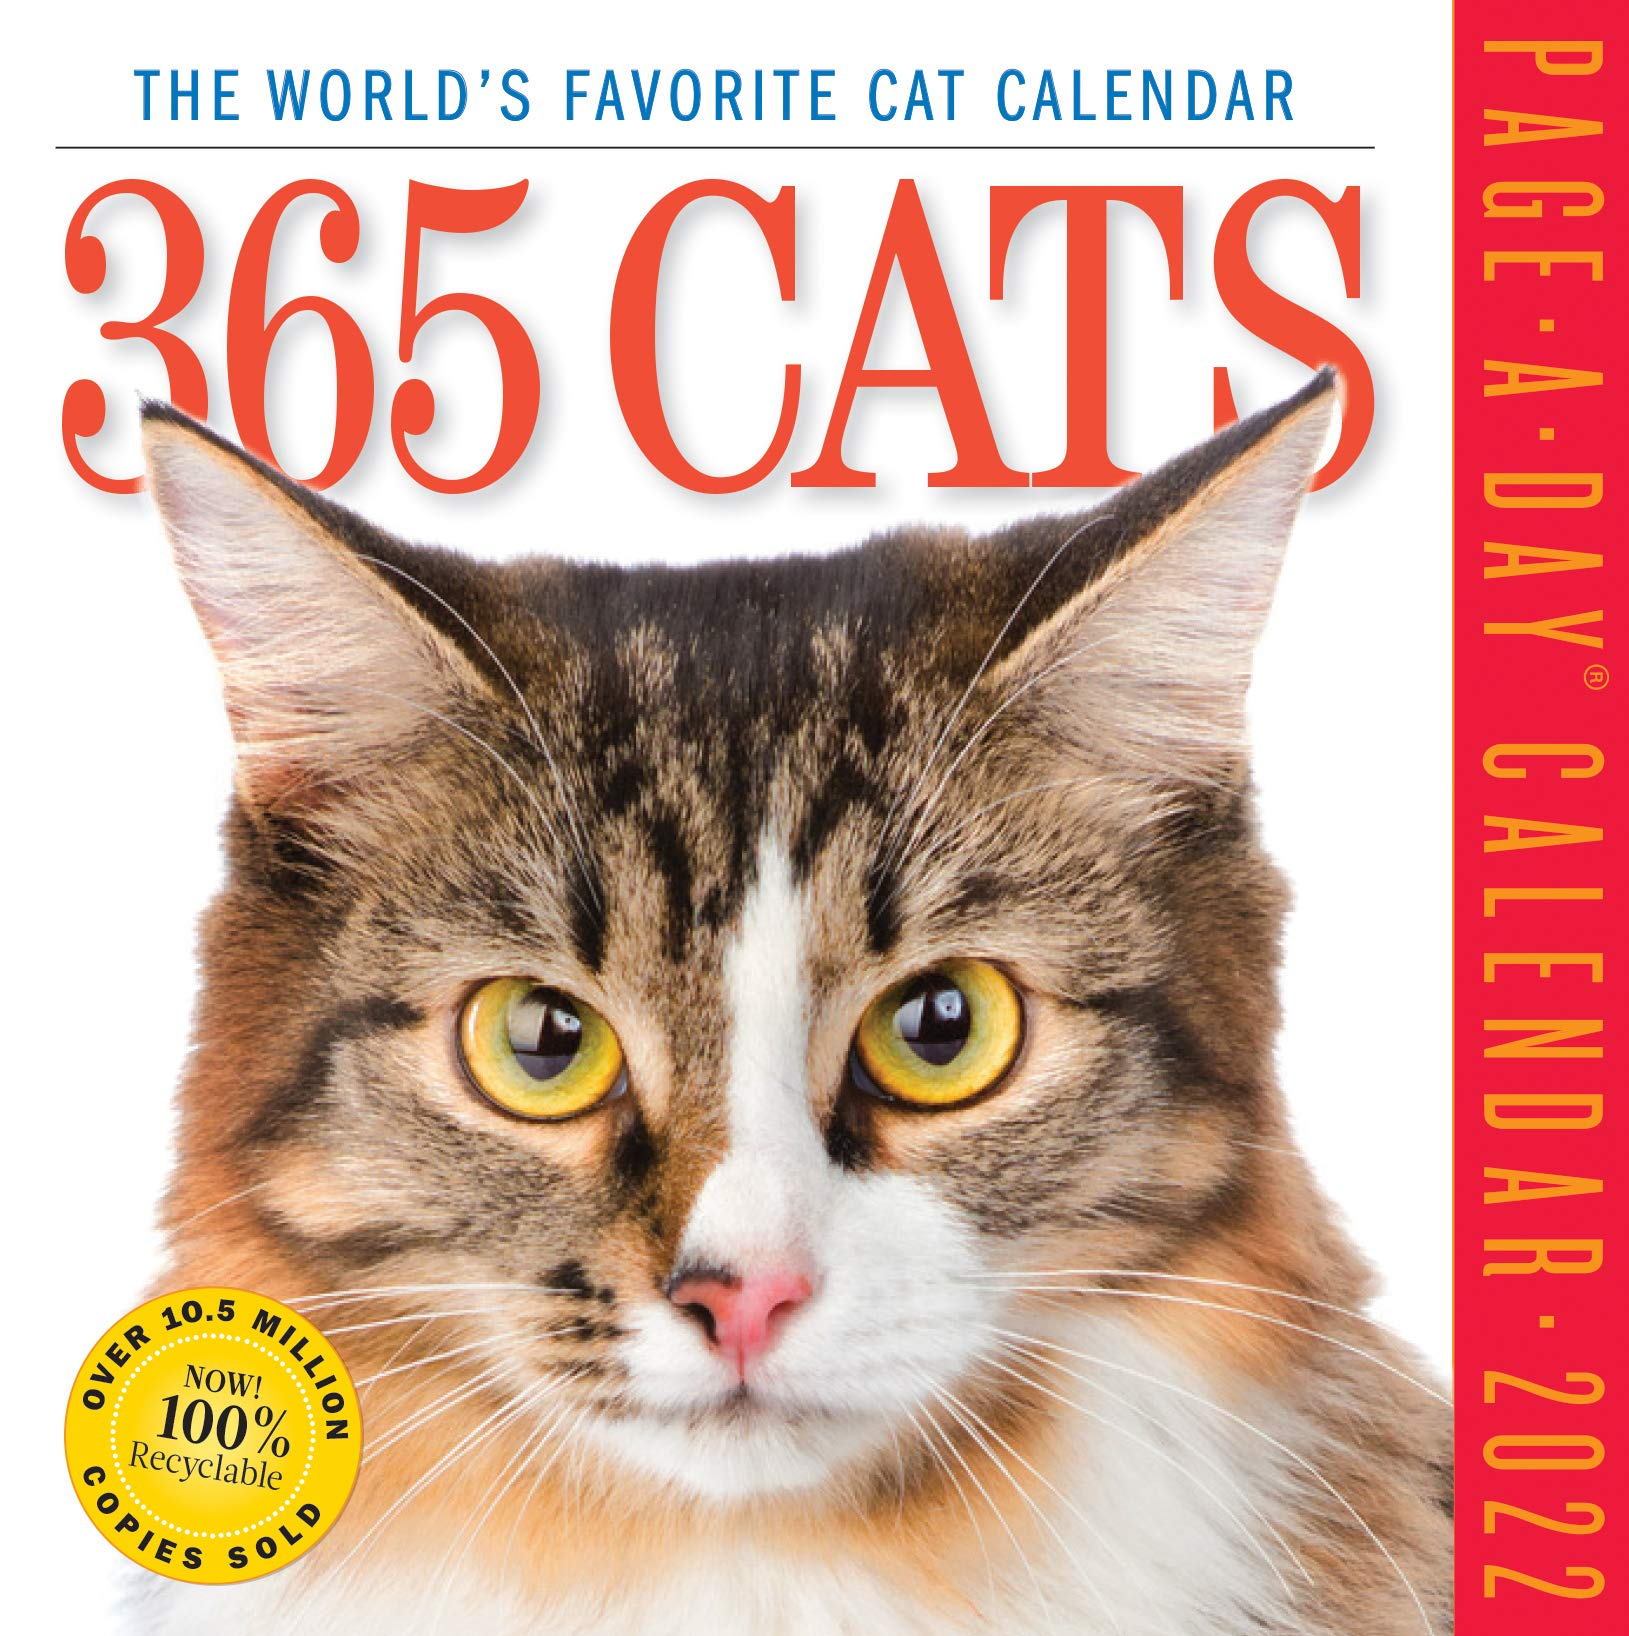 Cat Calendar 2022.Buy 365 Cats Page A Day Calendar 2022 Book Online At Low Prices In India 365 Cats Page A Day Calendar 2022 Reviews Ratings Amazon In